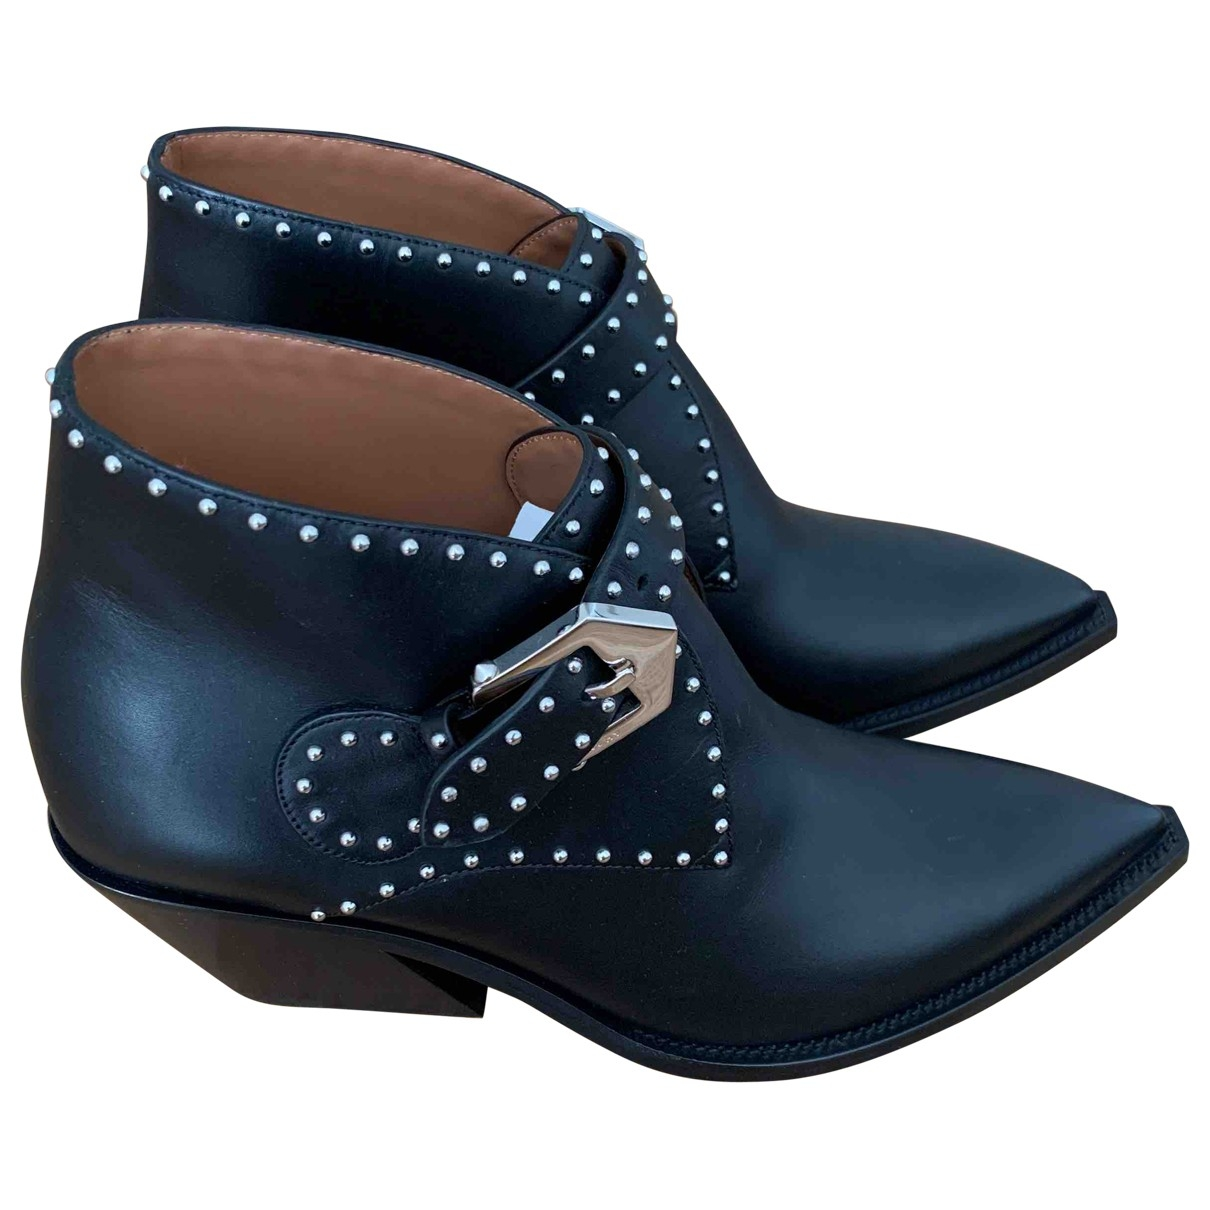 Givenchy \N Black Leather Ankle boots for Women 37 EU